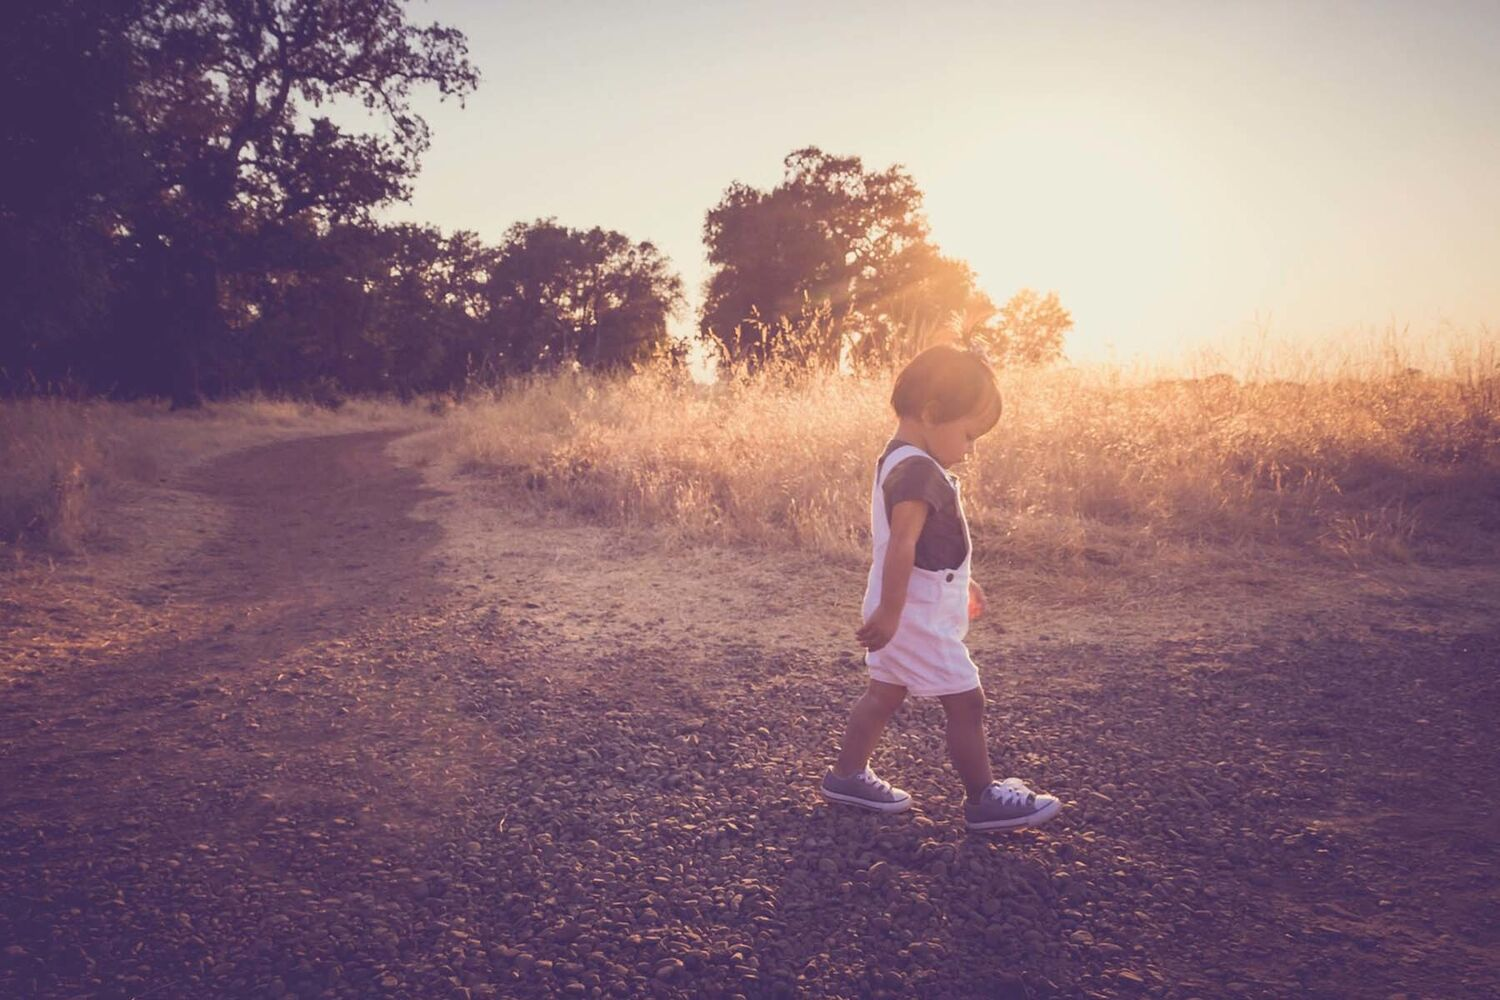 Young Child Walking Through Country Side During Sunset